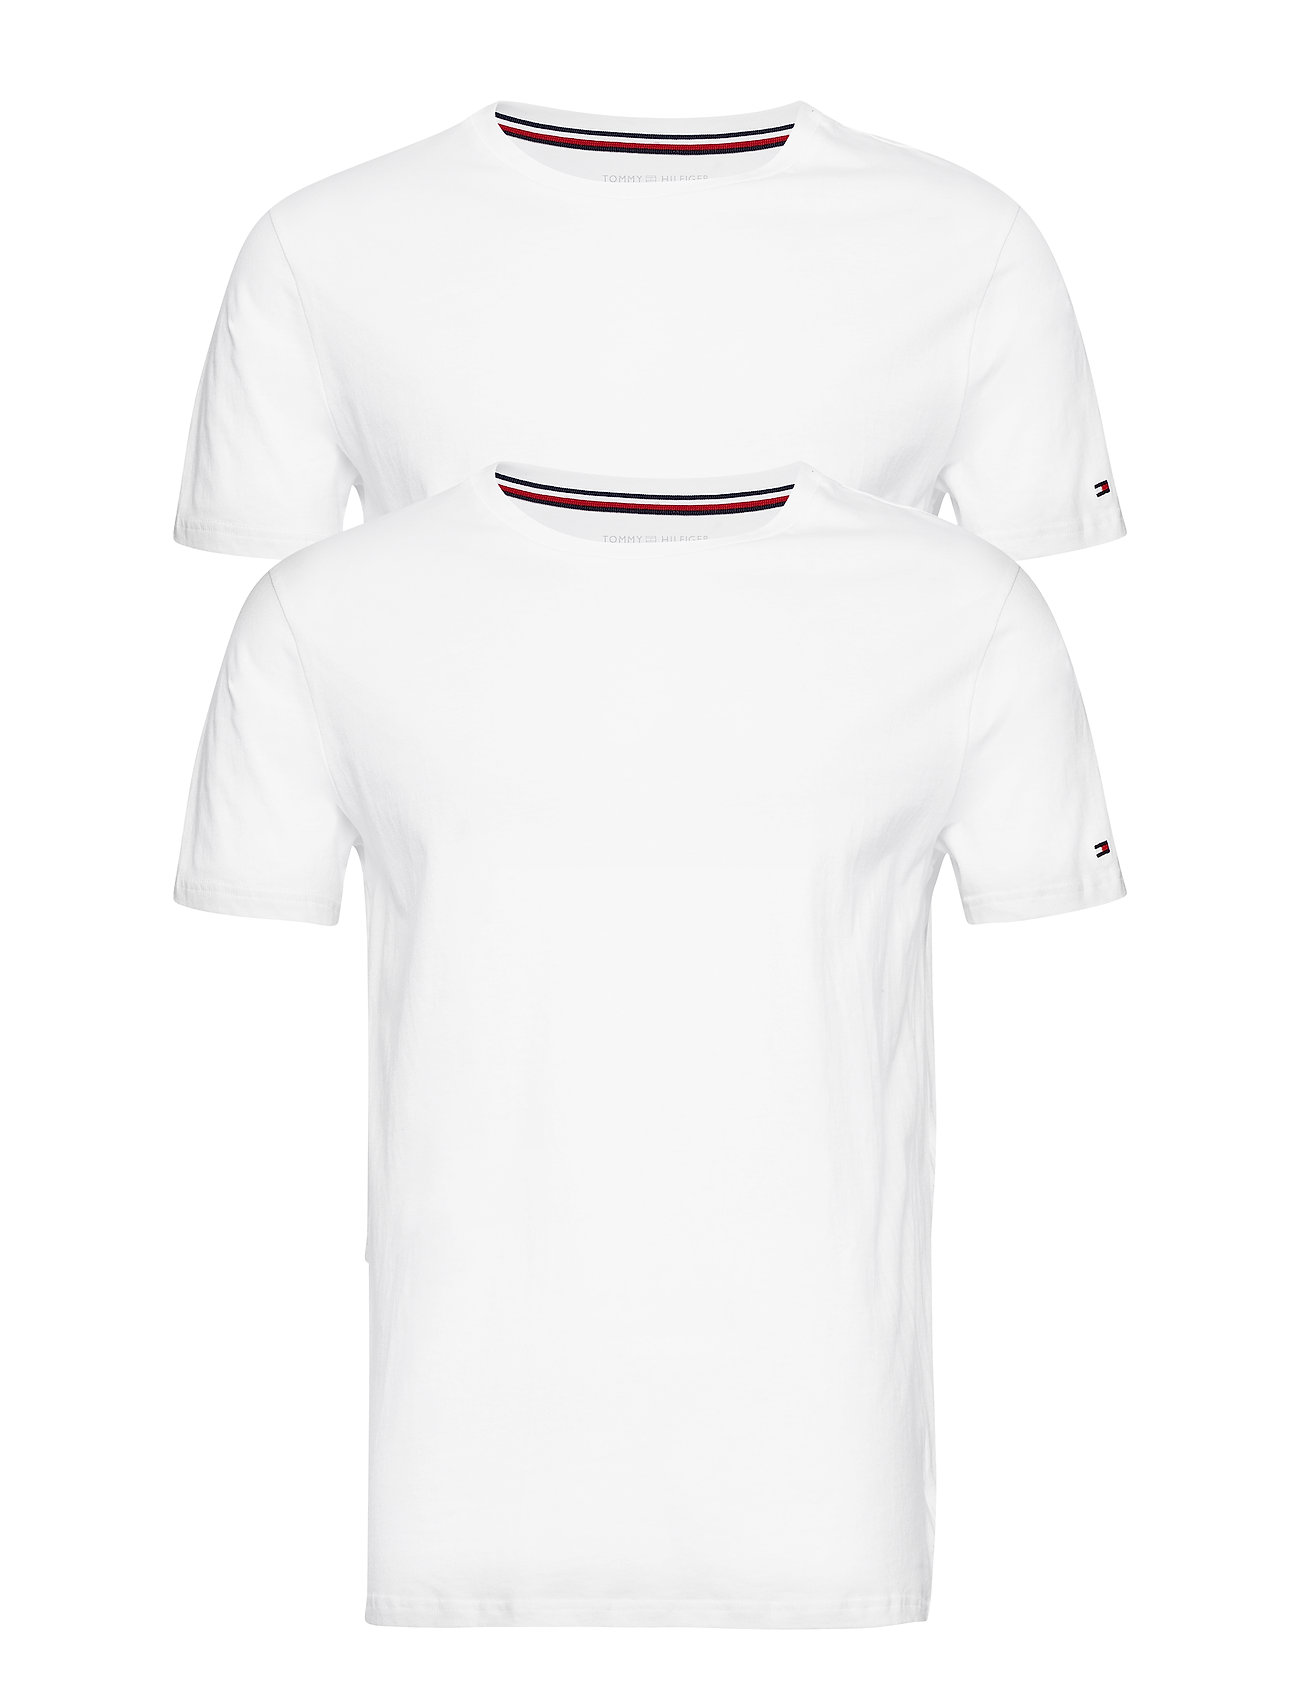 Image of 2p Cn Tee Ss T-shirt Hvid Tommy Hilfiger (3069874767)